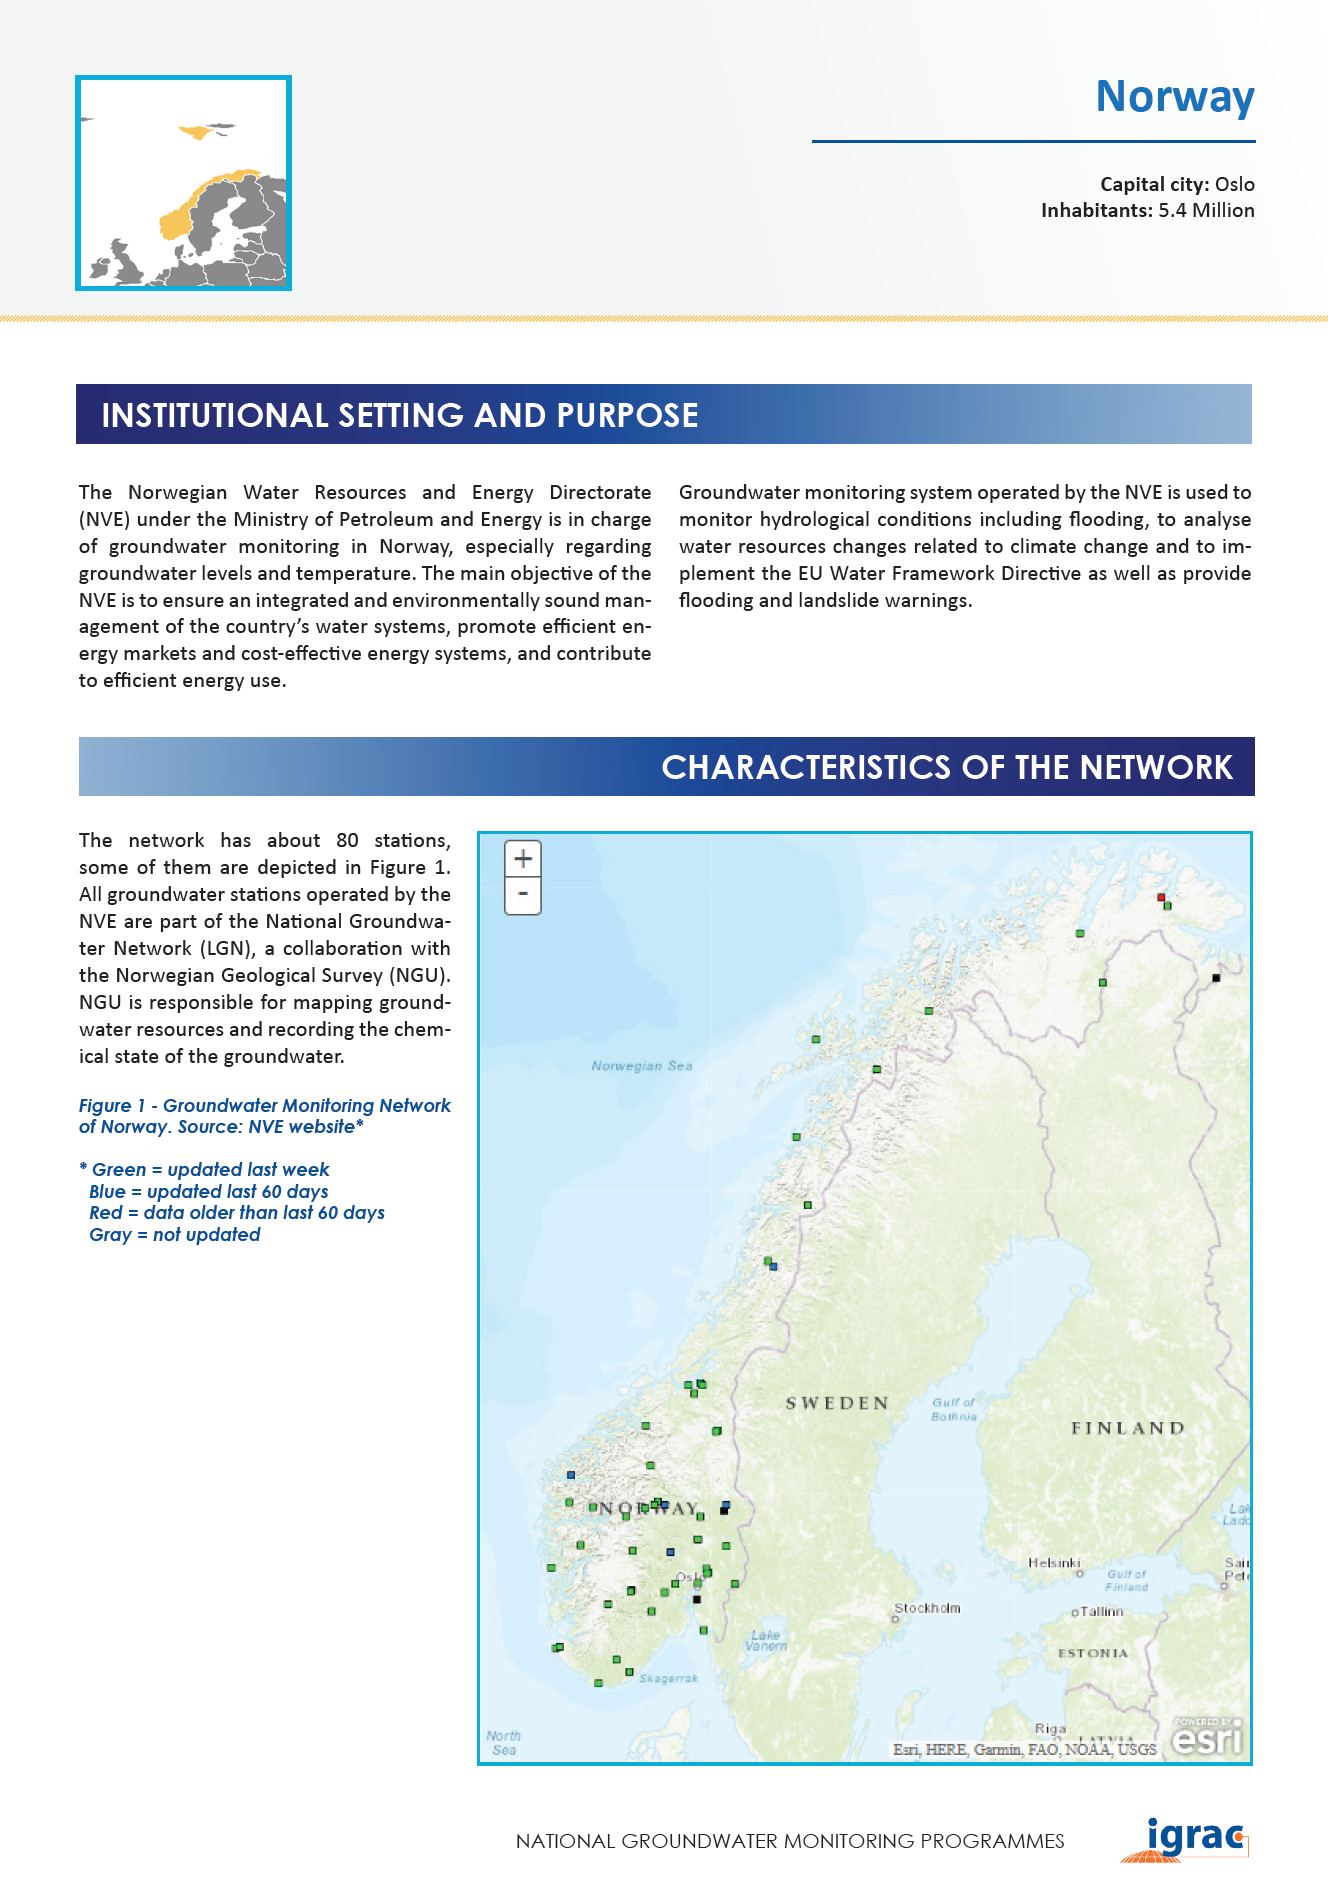 Groundwater monitoring country profile - Norway